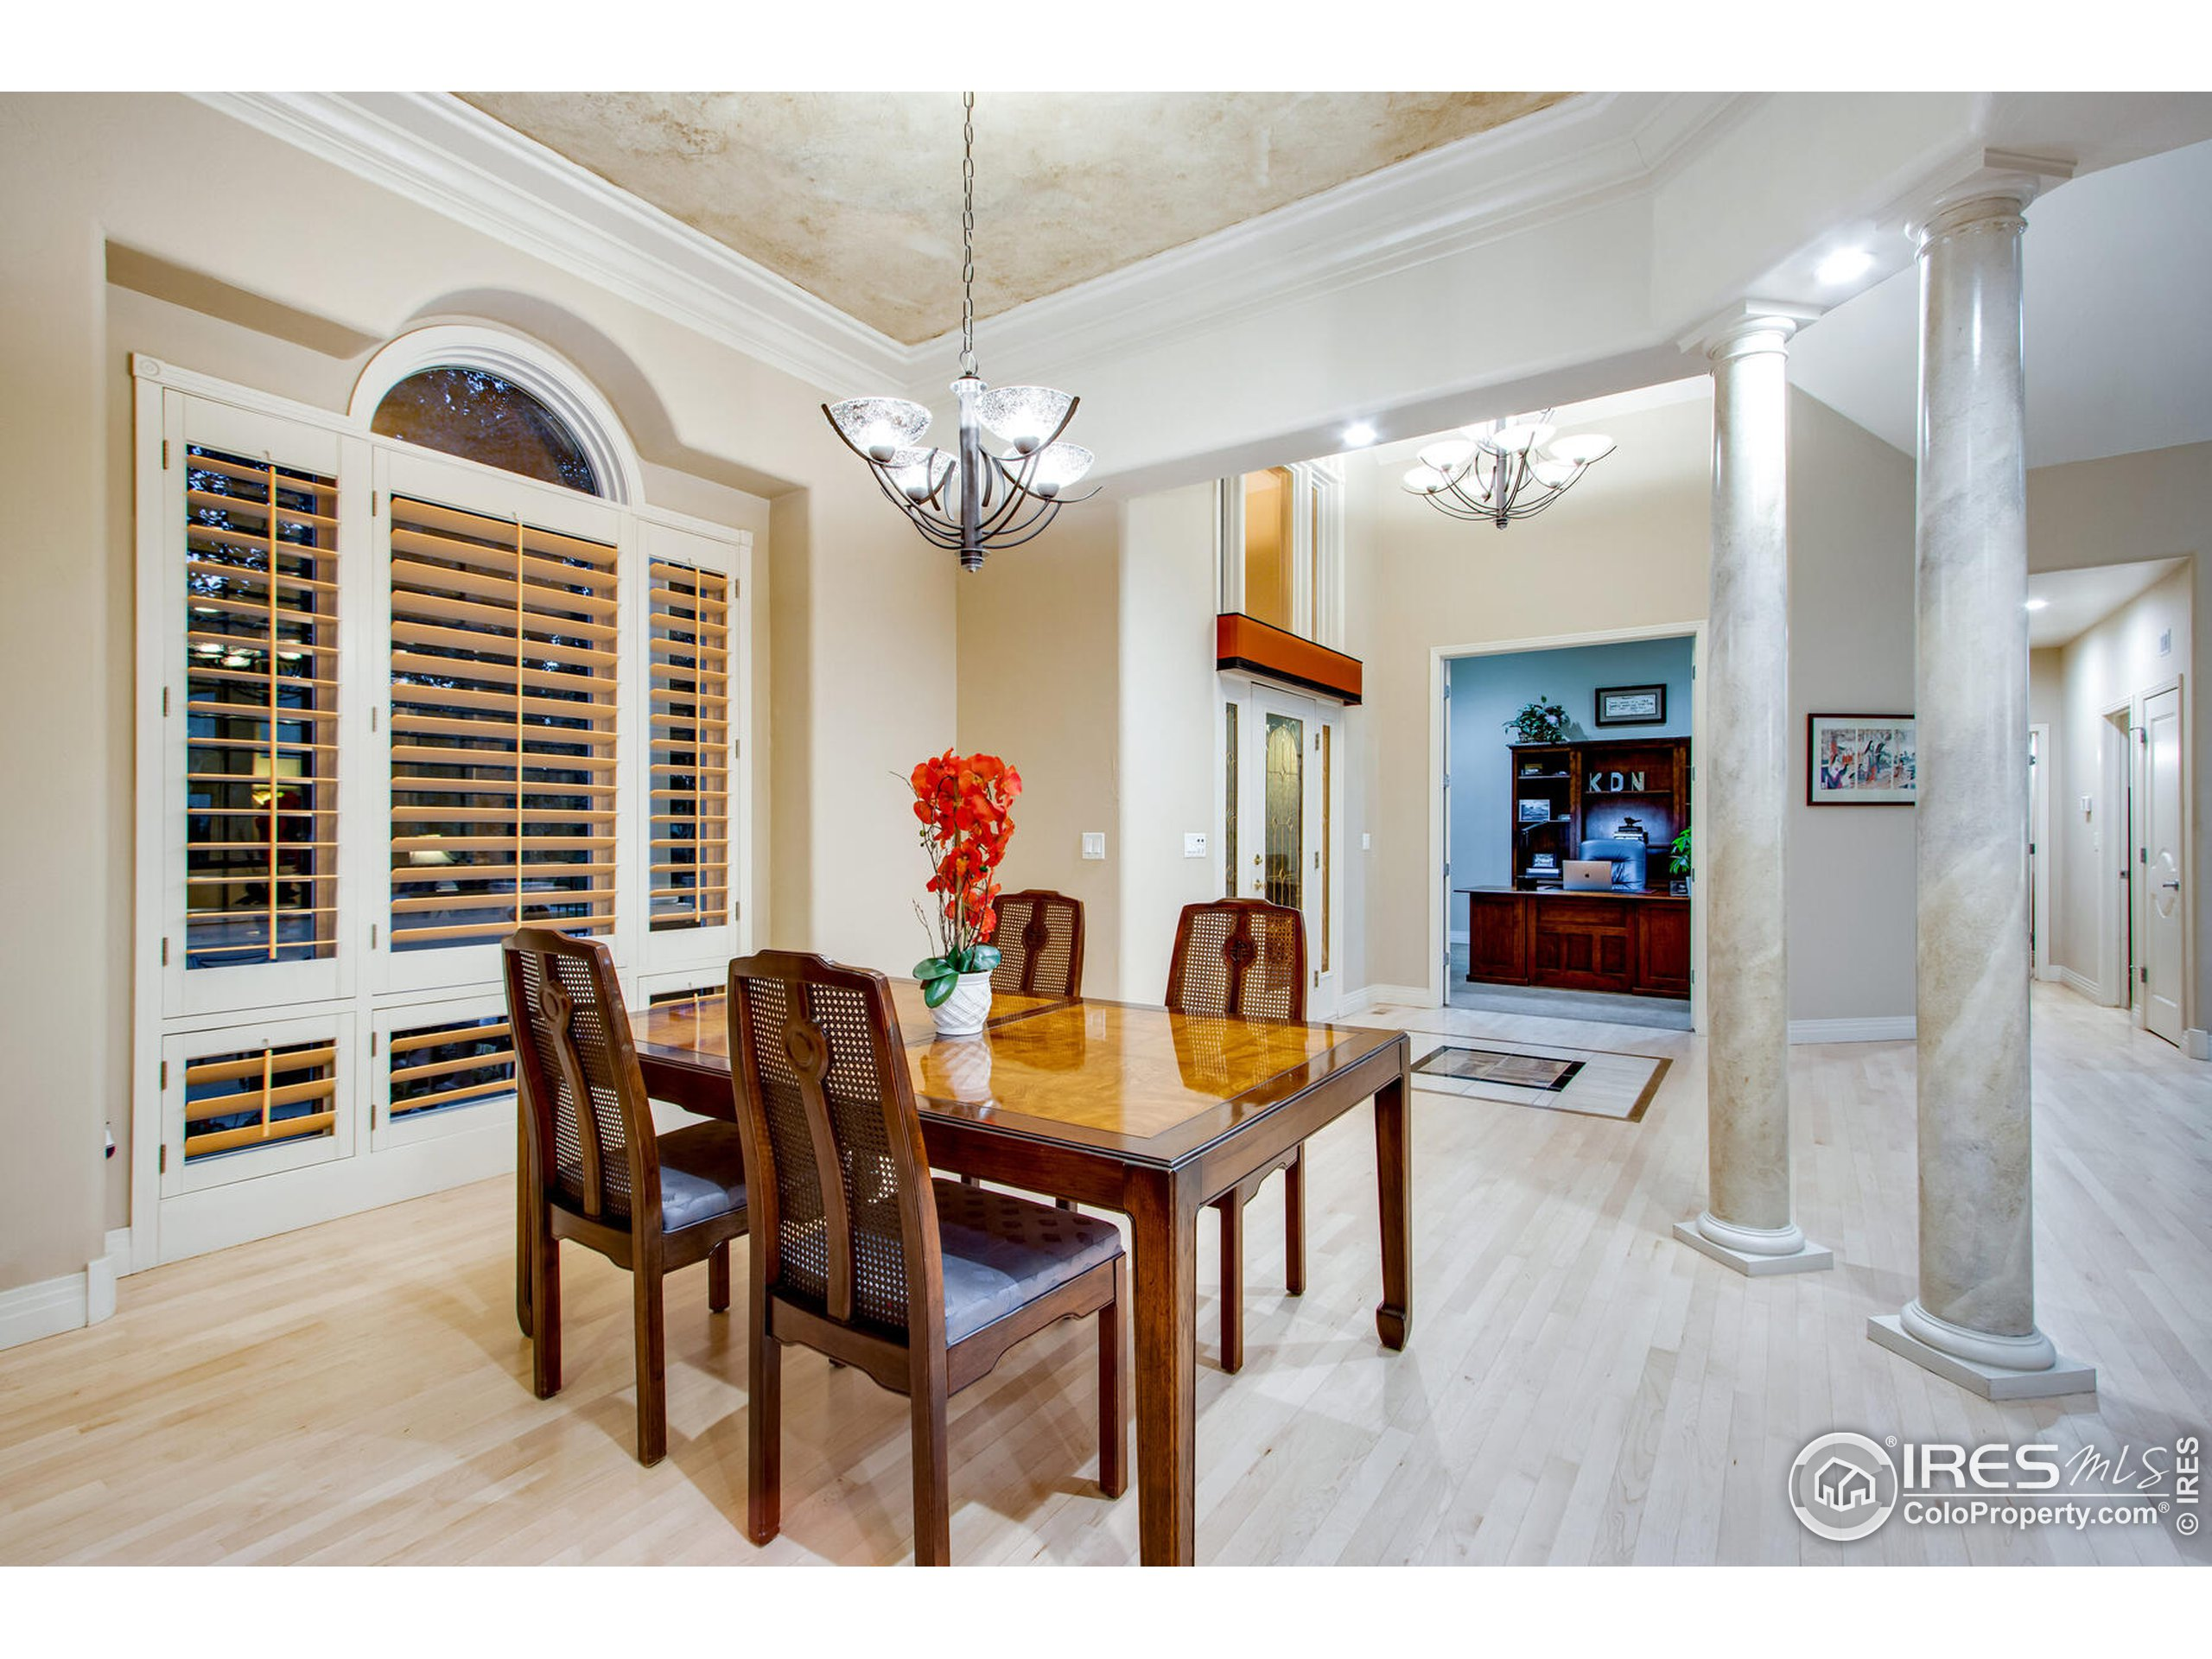 Spacious Open Dining Room with detailed faux design on ceiling and columns, and trey celings with crown molding